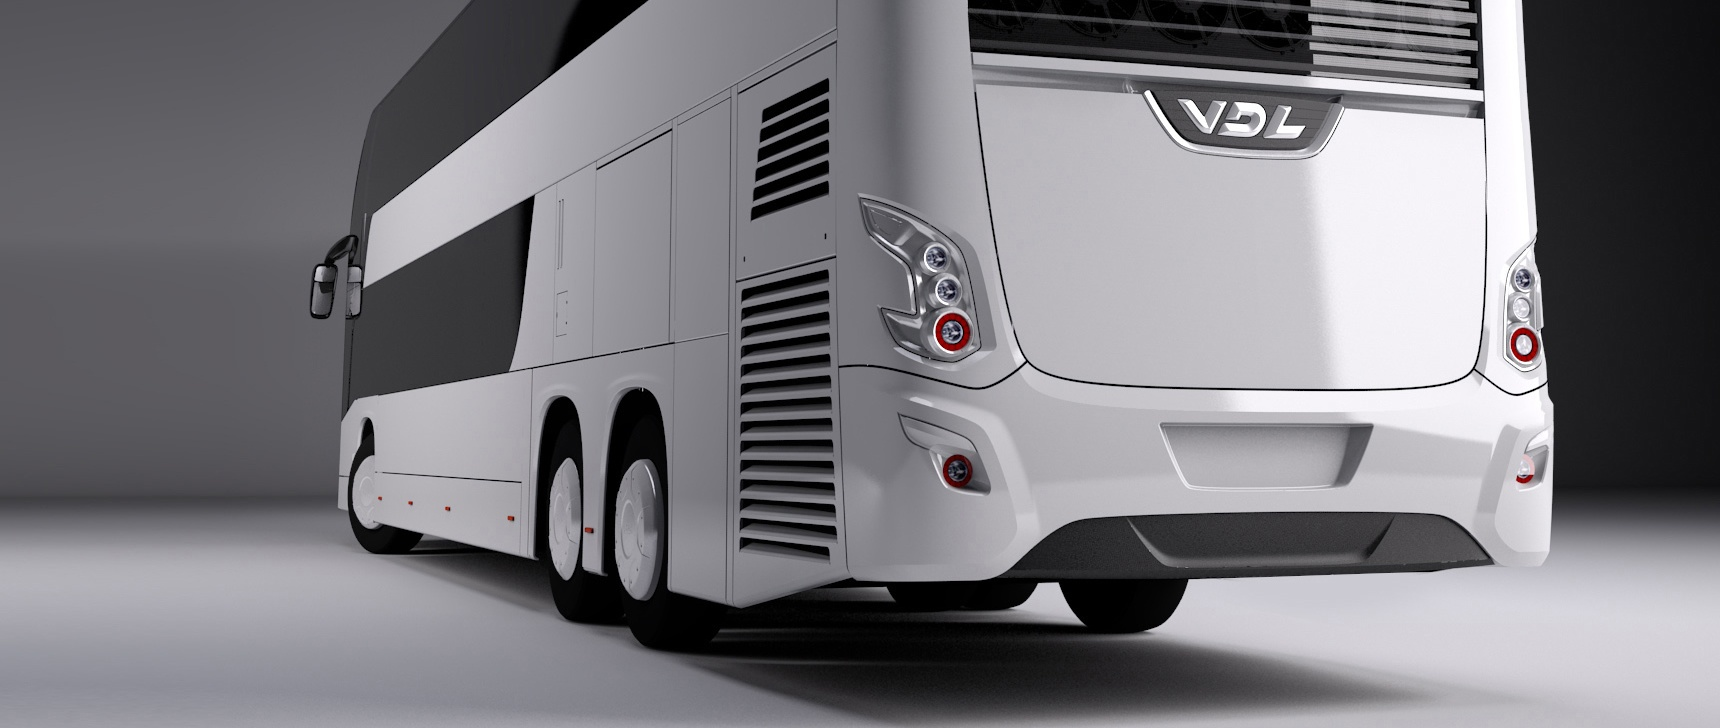 VDL Futura bus with Lite-wire headlights and rear lights